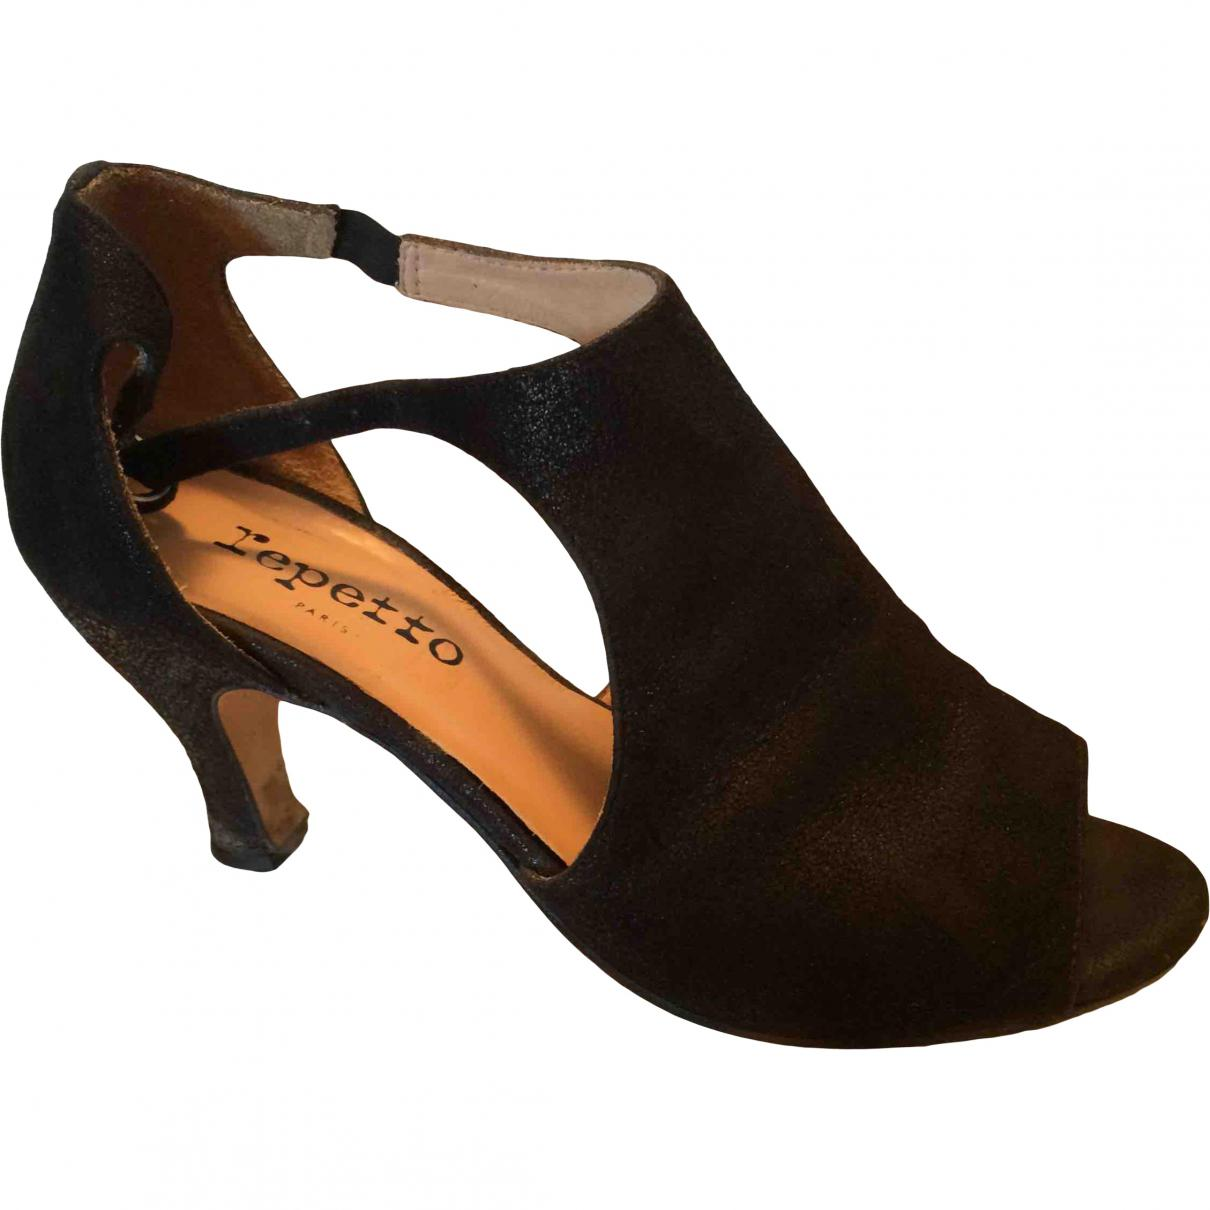 Pre-owned - Heels Repetto 35NXXT